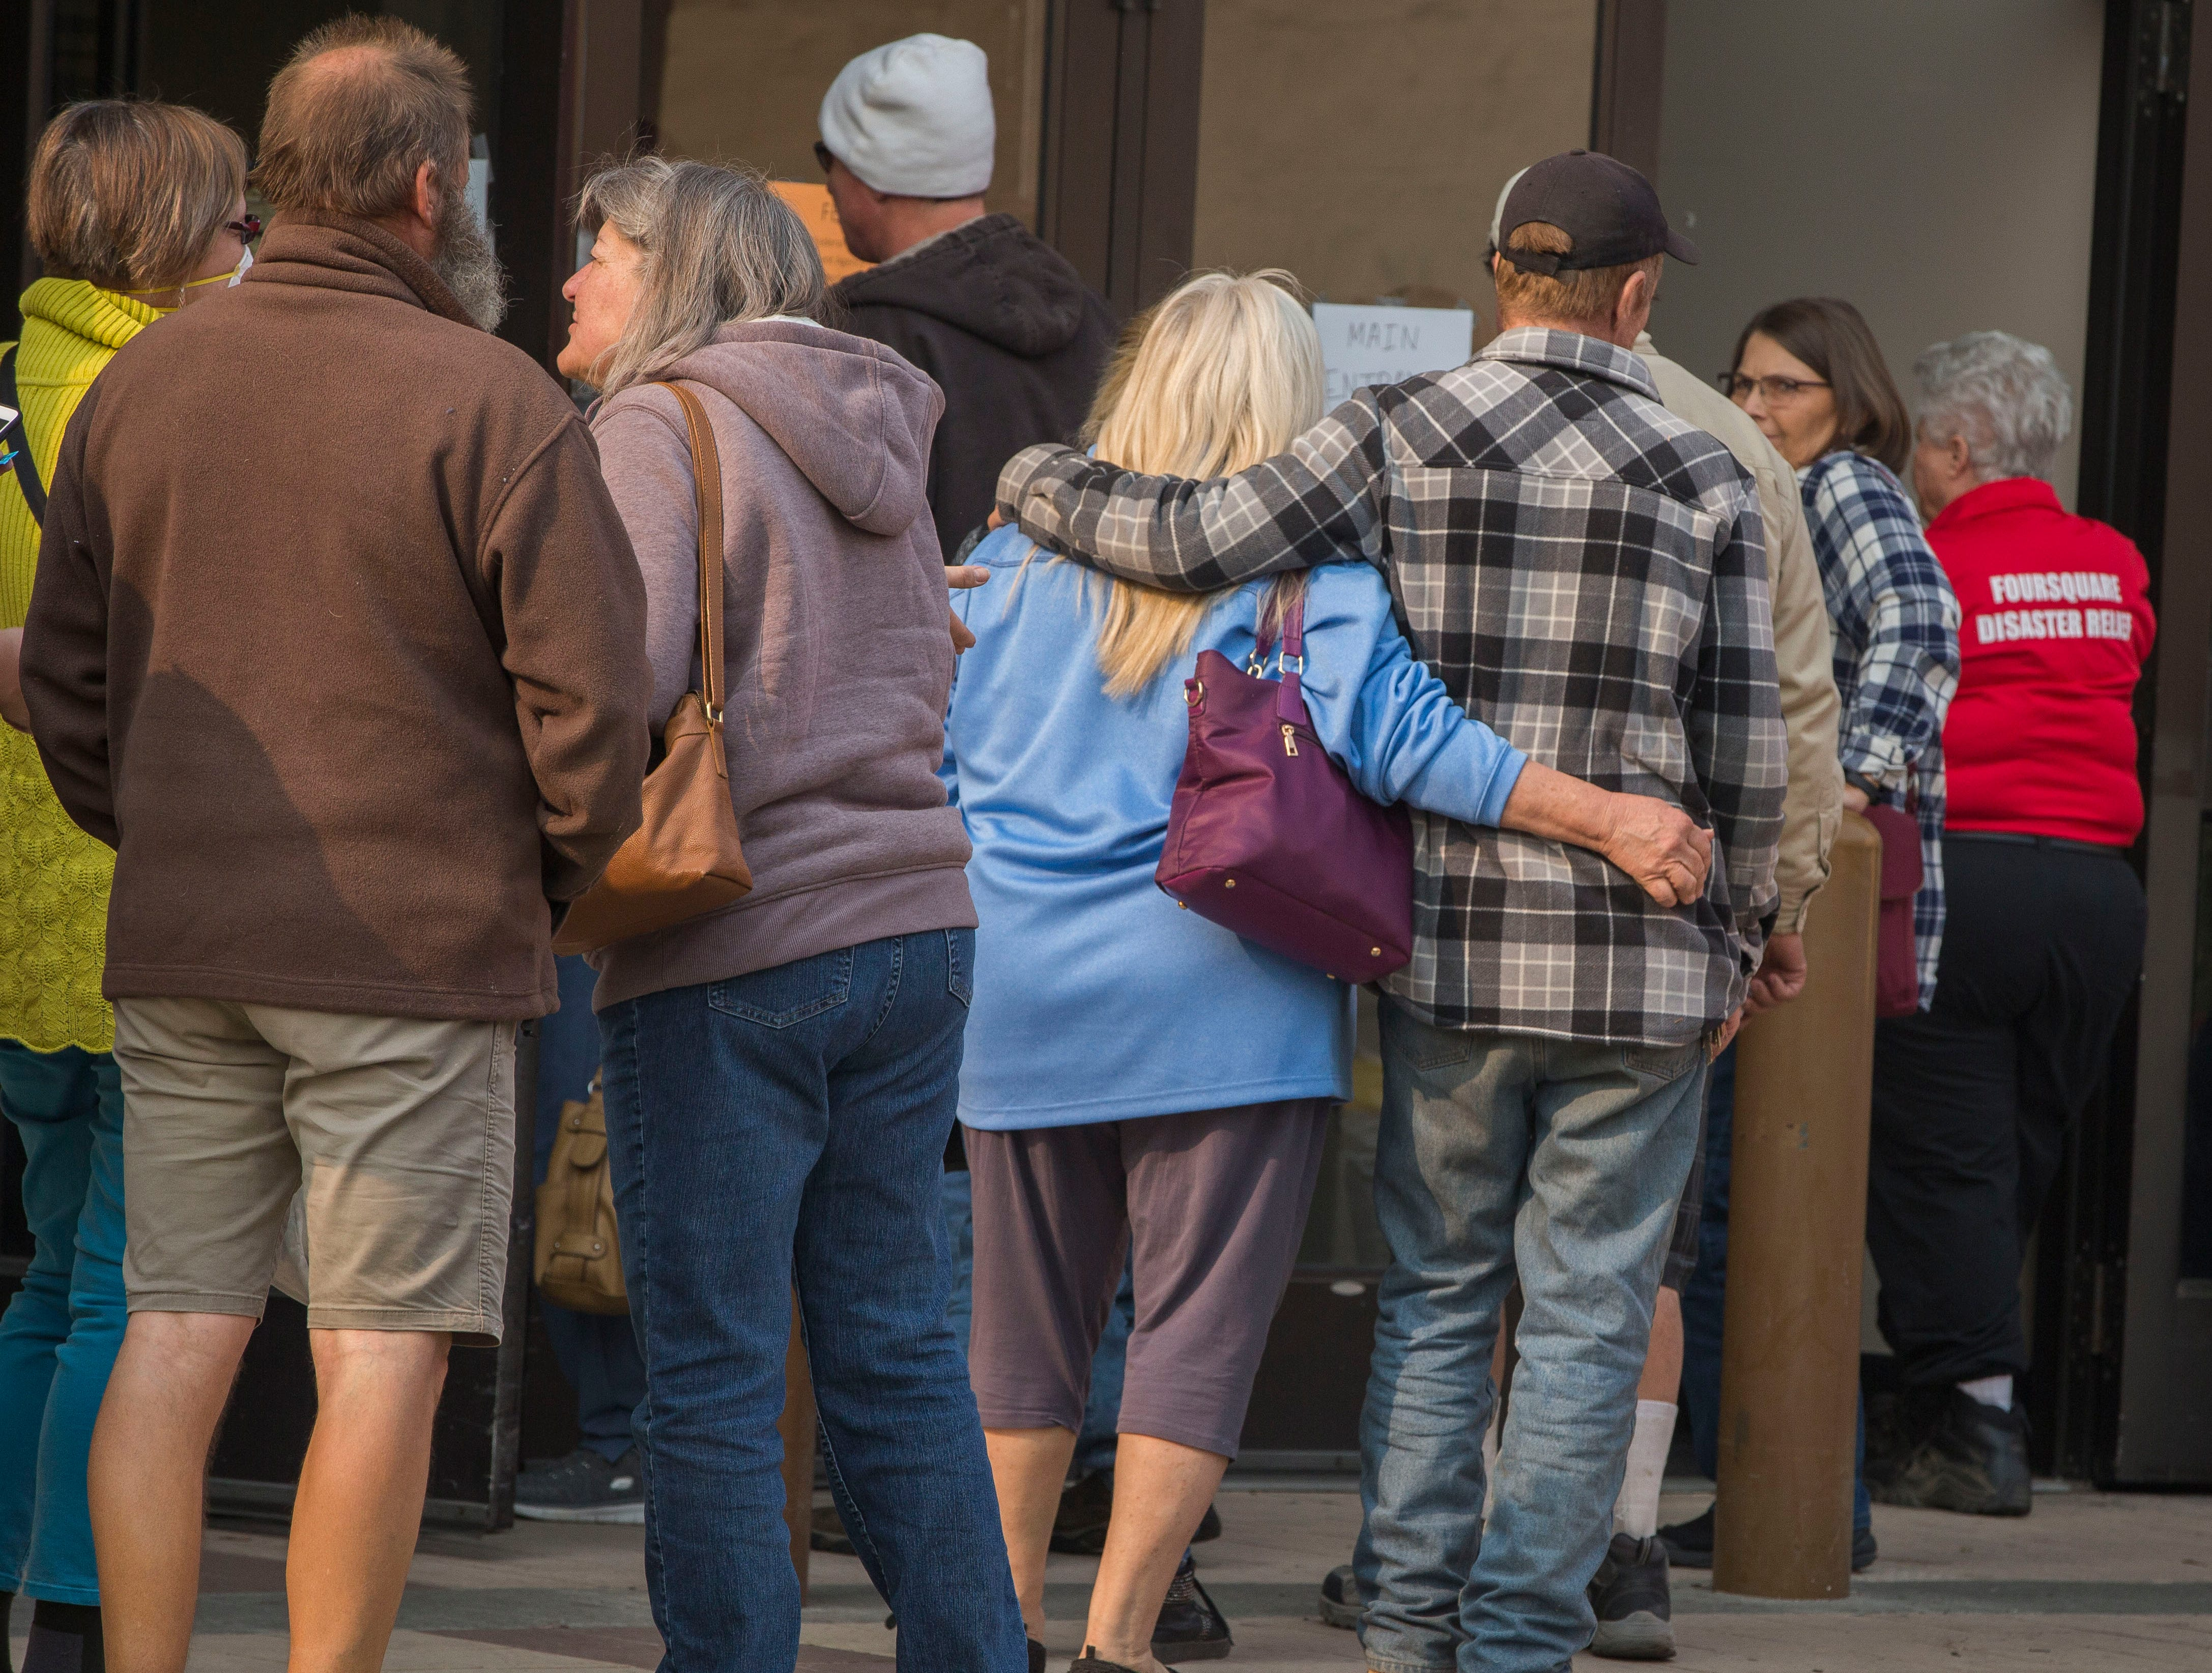 People wait in a long line to get into the former Sears store in the Chico Mall, Saturday, Nov. 17, 2018. The empty store now houses FEMA and a host of other local, state and government agencies to help those affected by the Camp Fire.